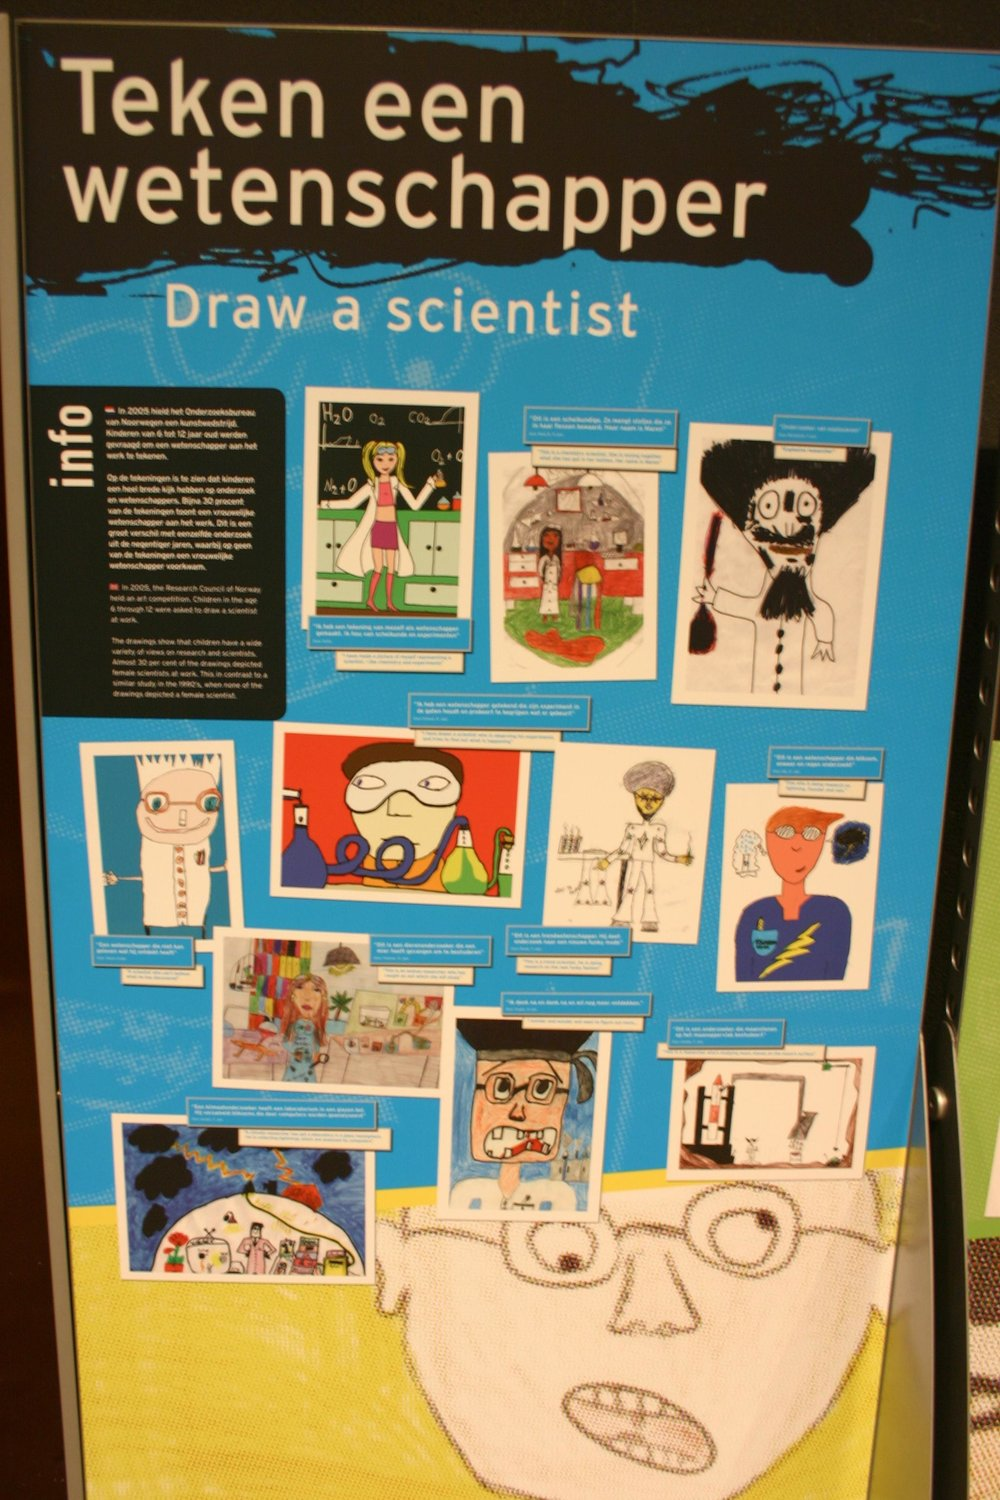 Draw-a-scientist test drawings. Credit:  Ryan Somma , Flickr.com